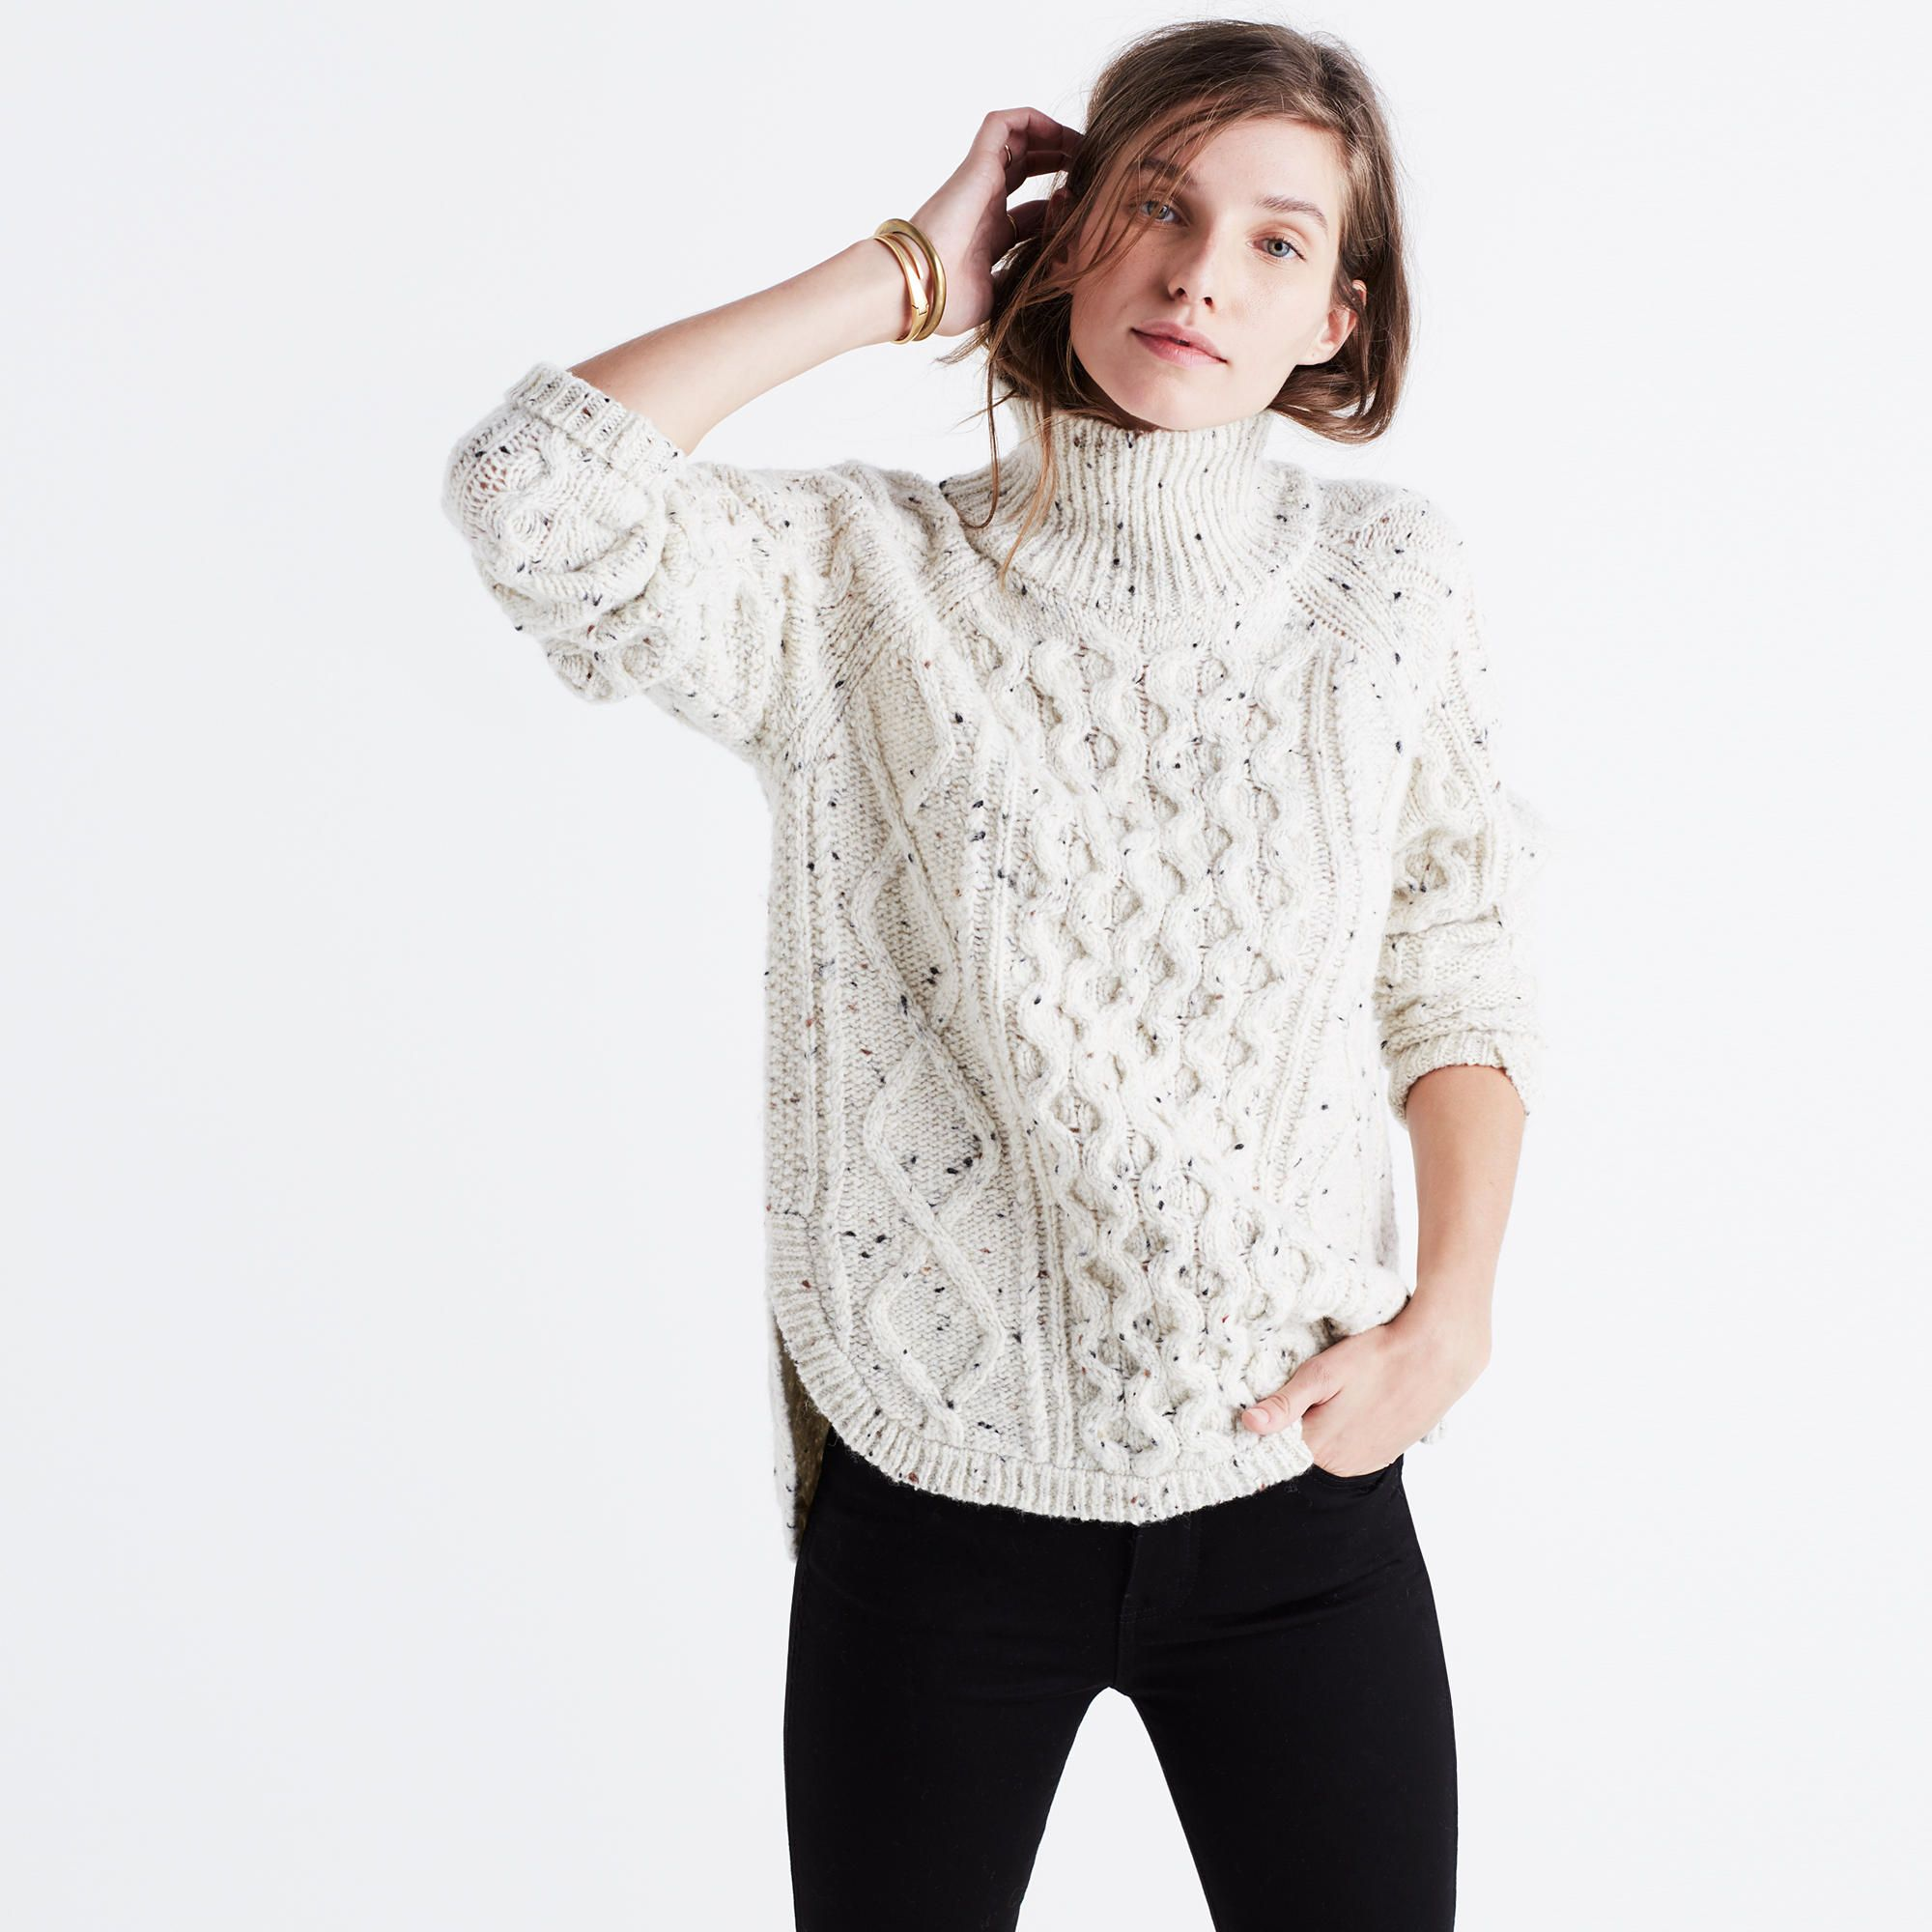 Cableknit Shirttail Turtleneck Sweater | Madewell, Personal style ...